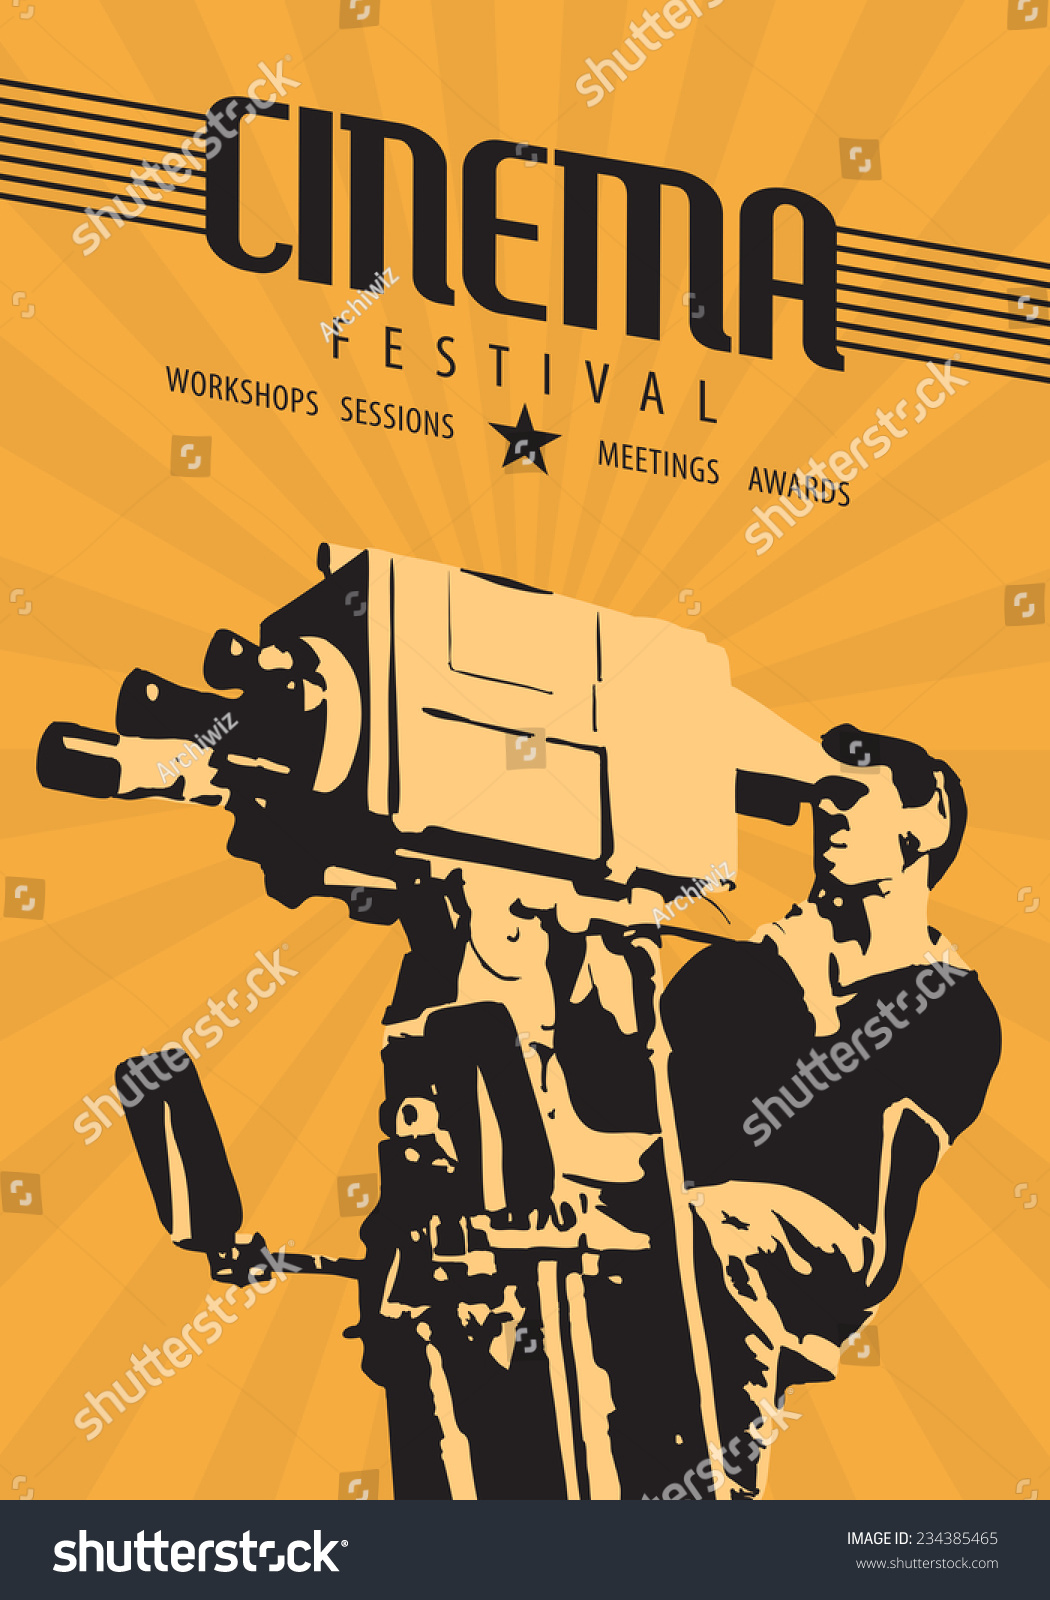 cinema film festival poster template vector のベクター画像素材